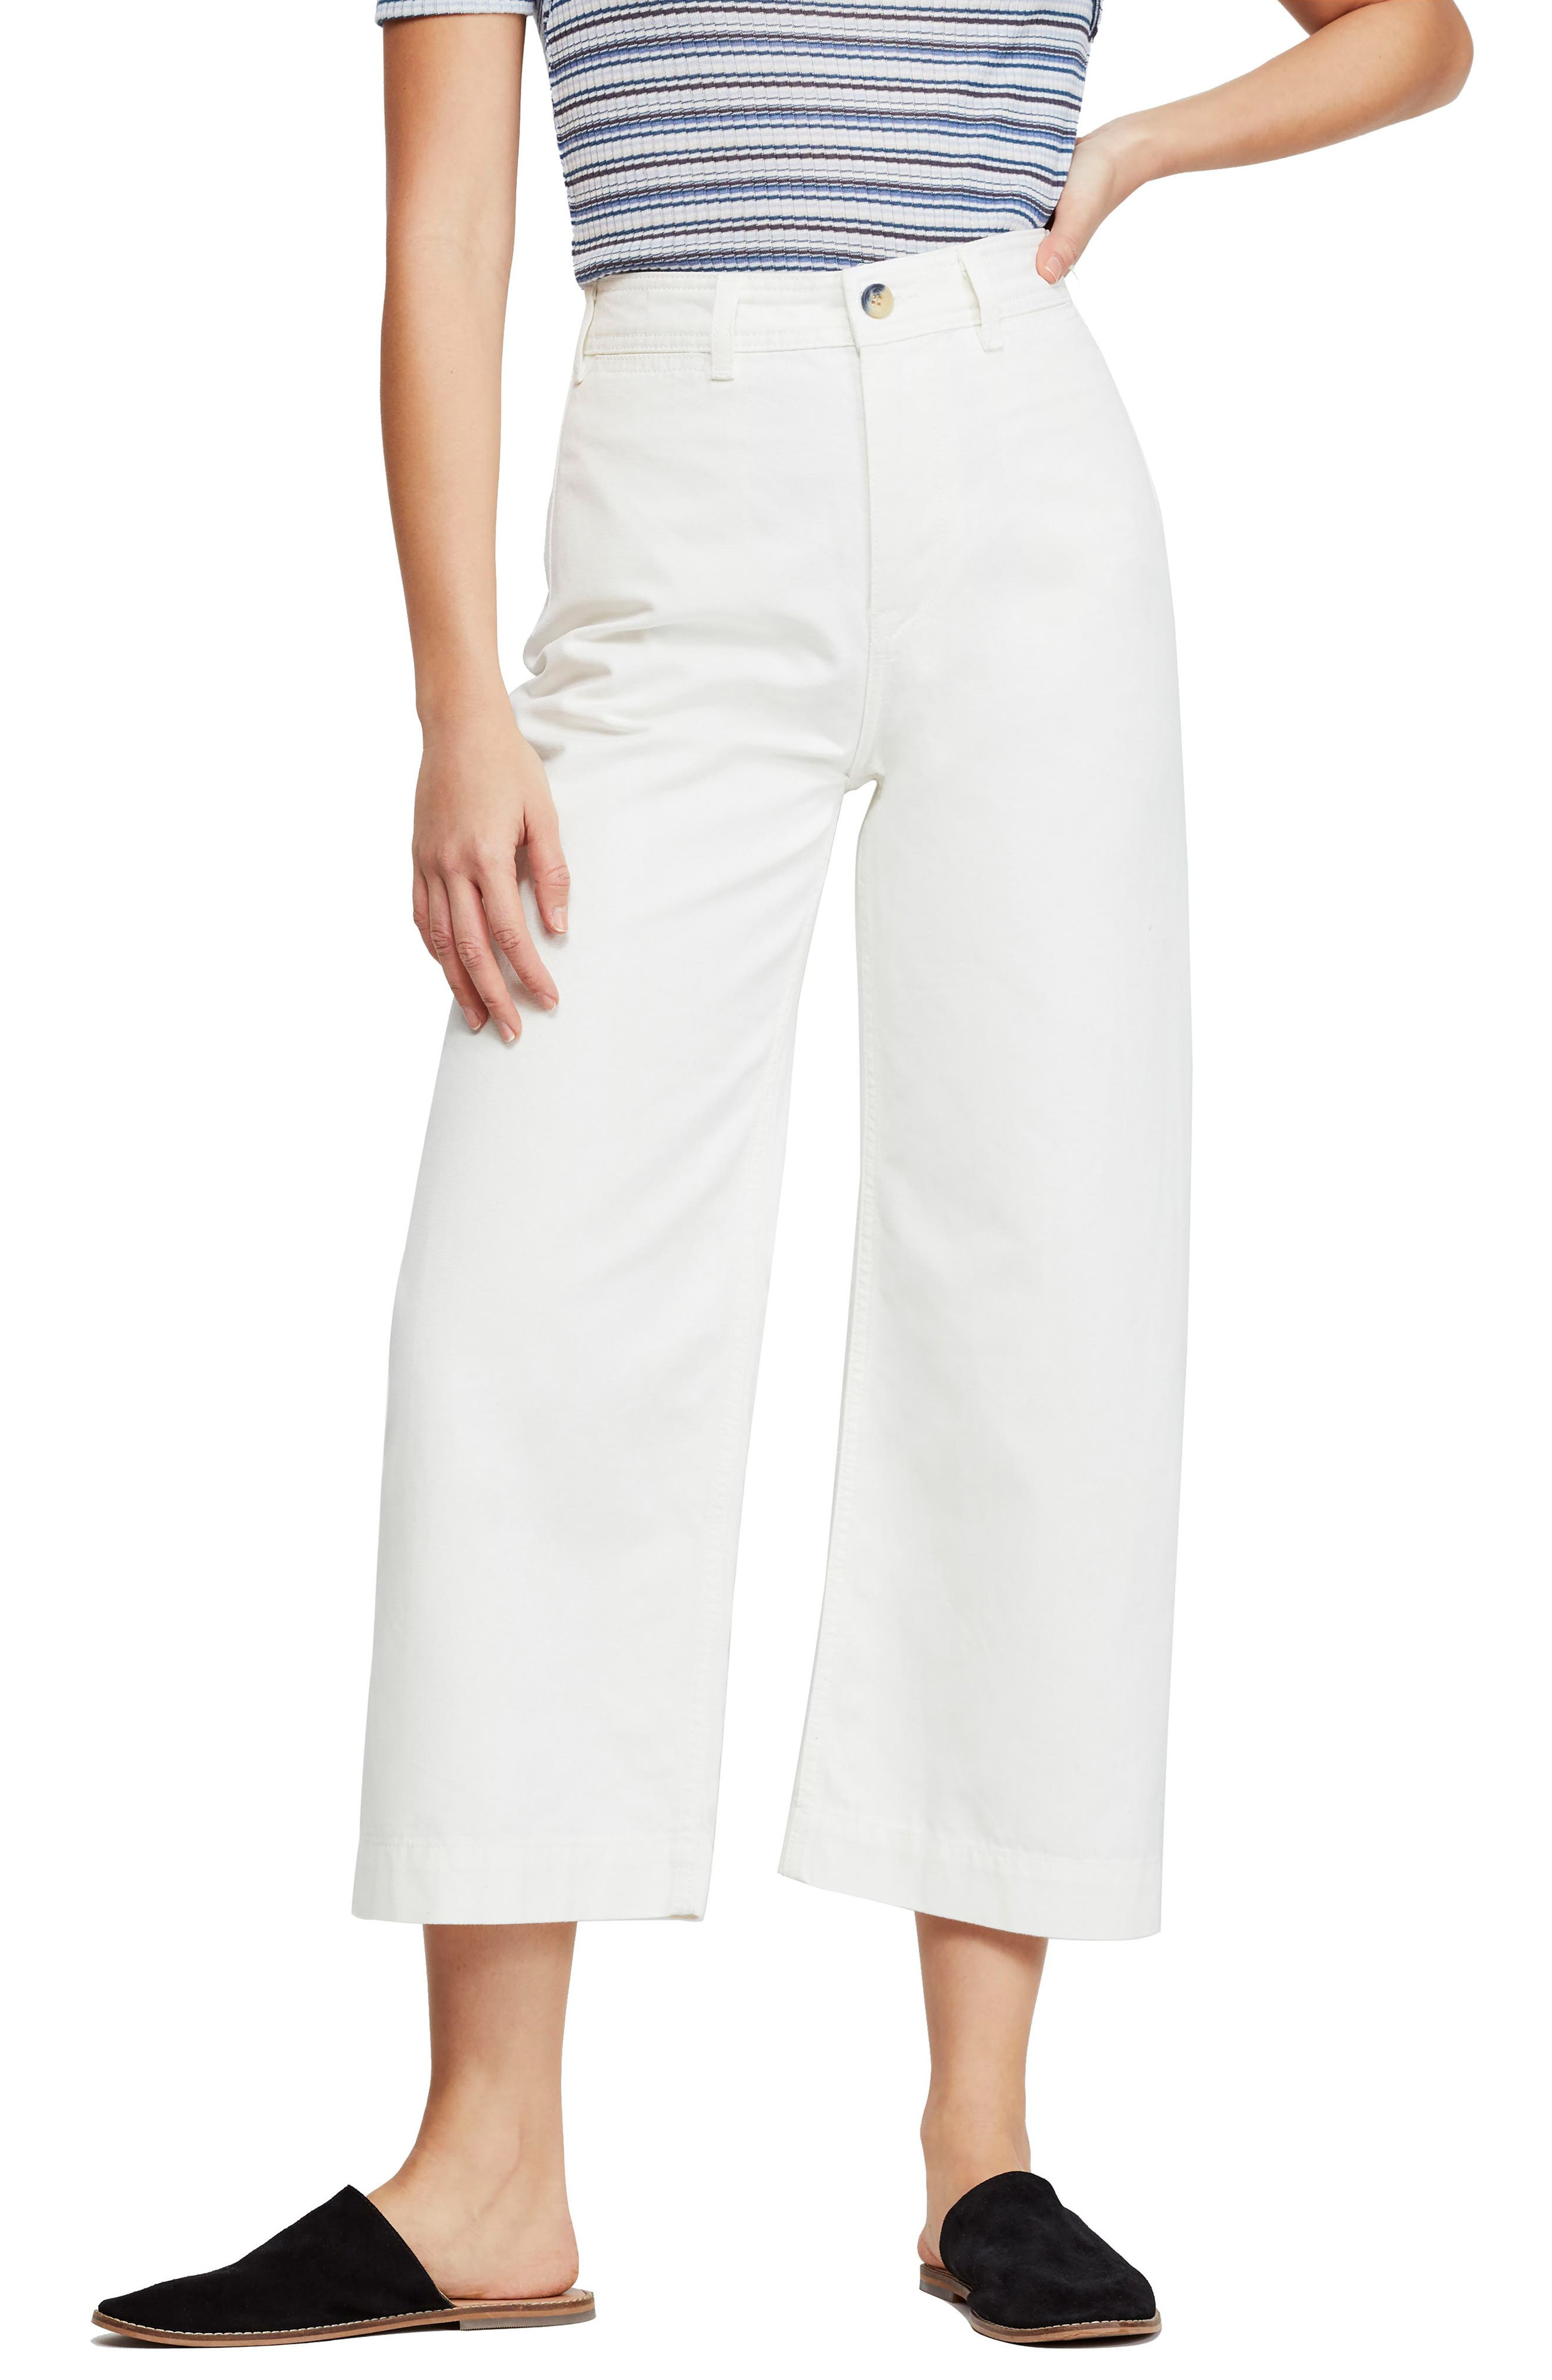 FREE PEOPLE We the Free by Free People Patti Crop Cotton Pants, Main, color, IVORY